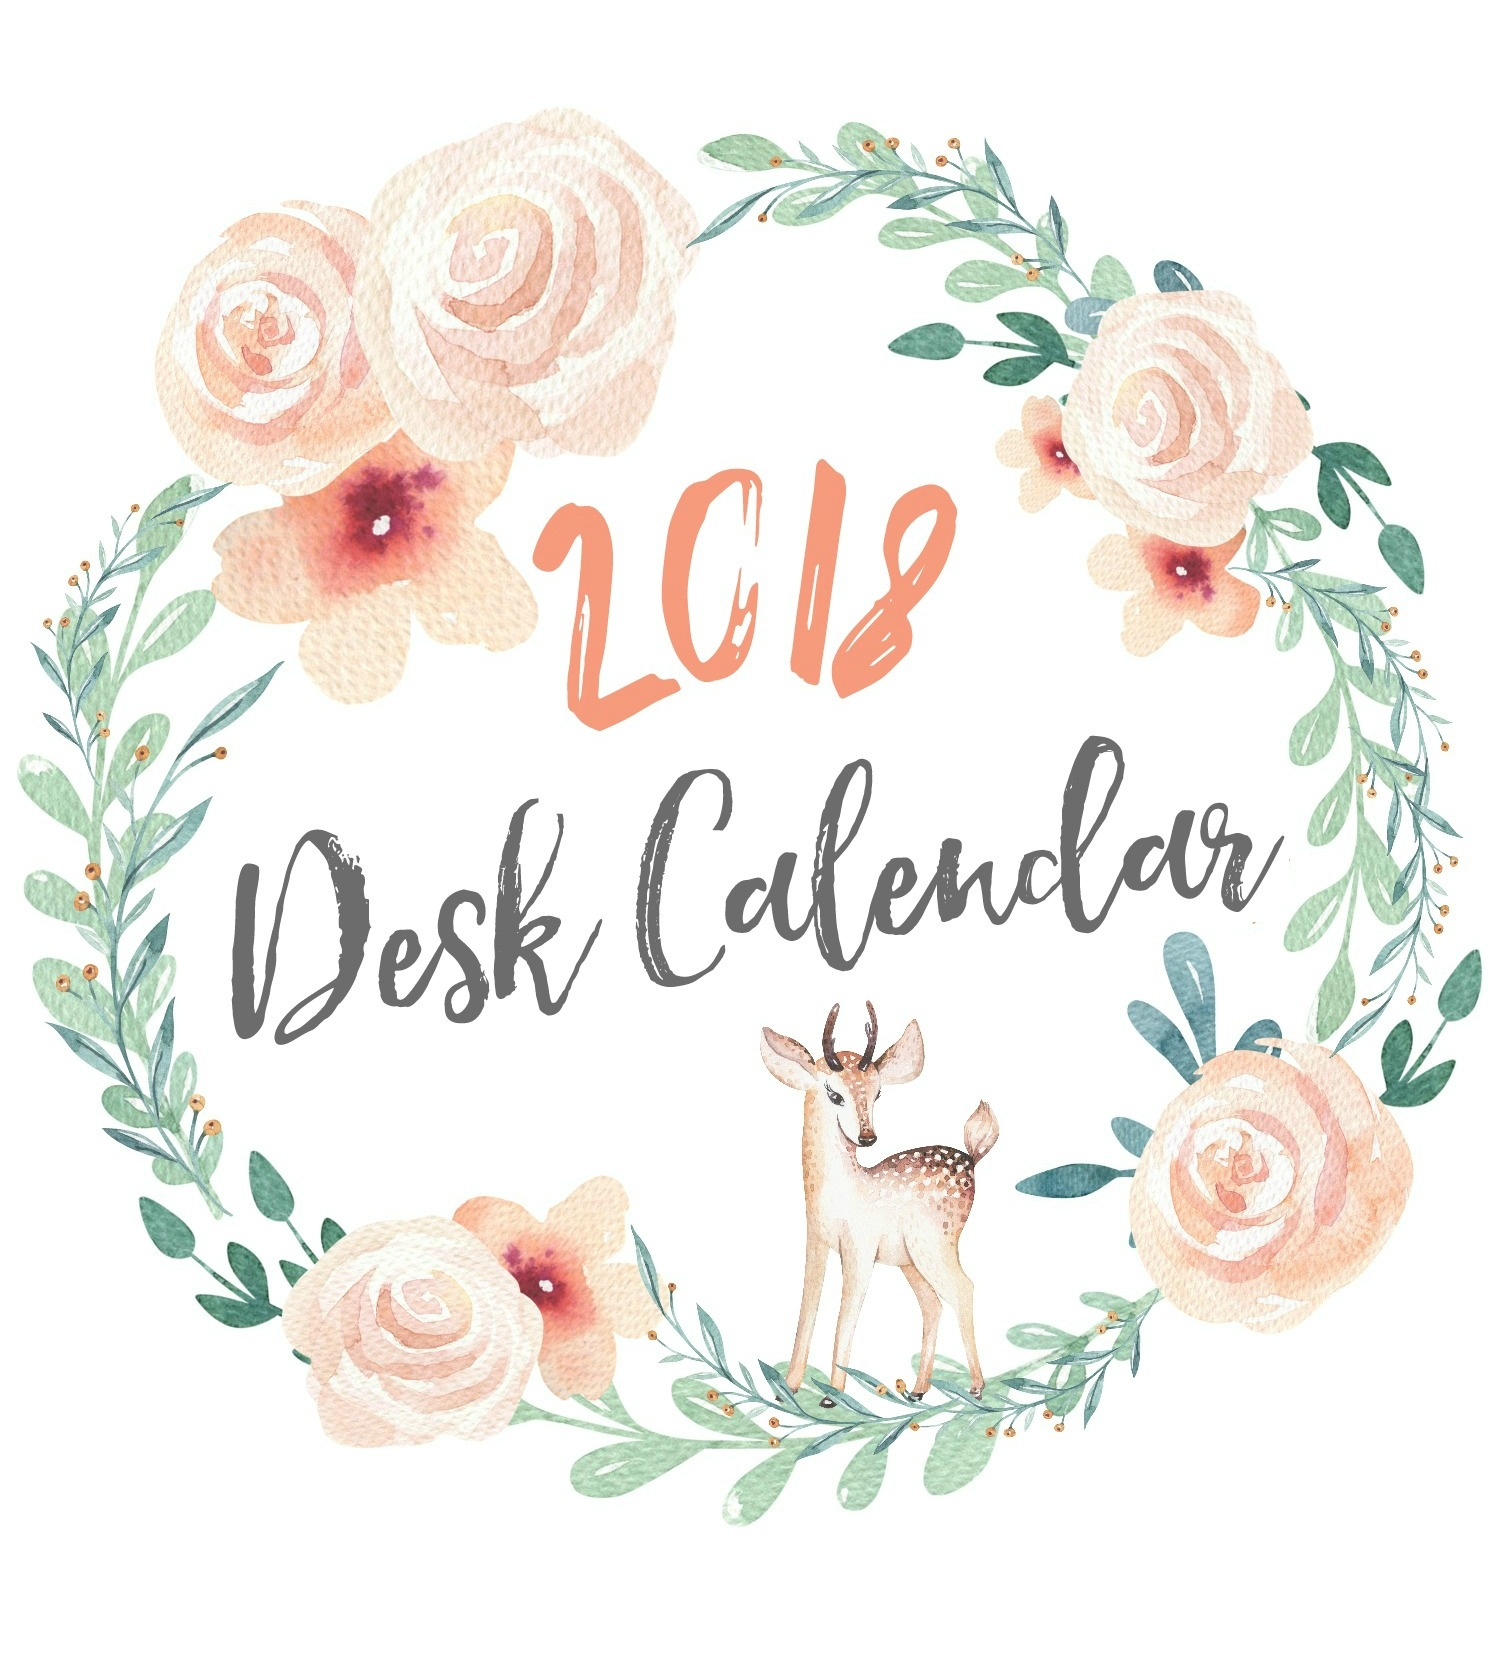 free printable calendar clean and scentsible 2018 Printable Calendar Pretty By Year erdferdf